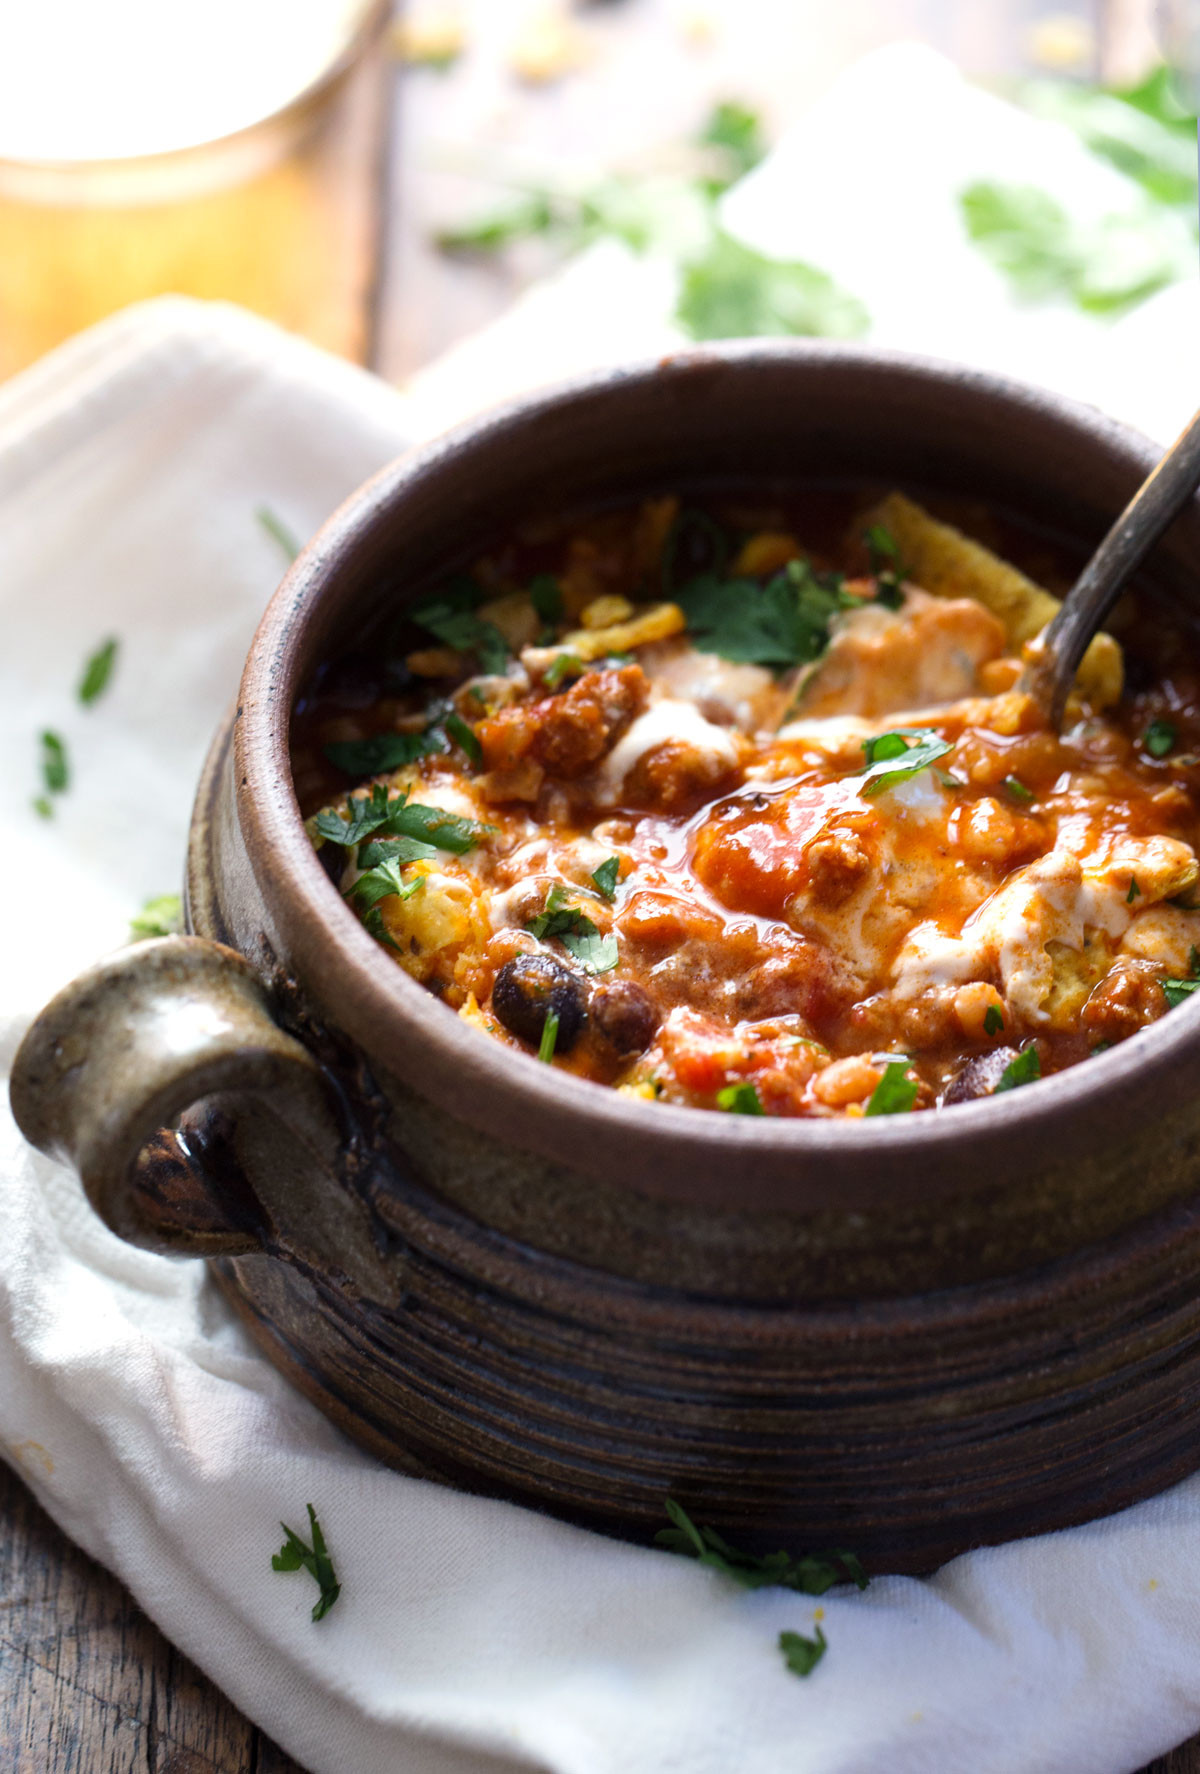 Turkey Chili Food Network  10 Meals To Make When You're Too Hungry to Cook